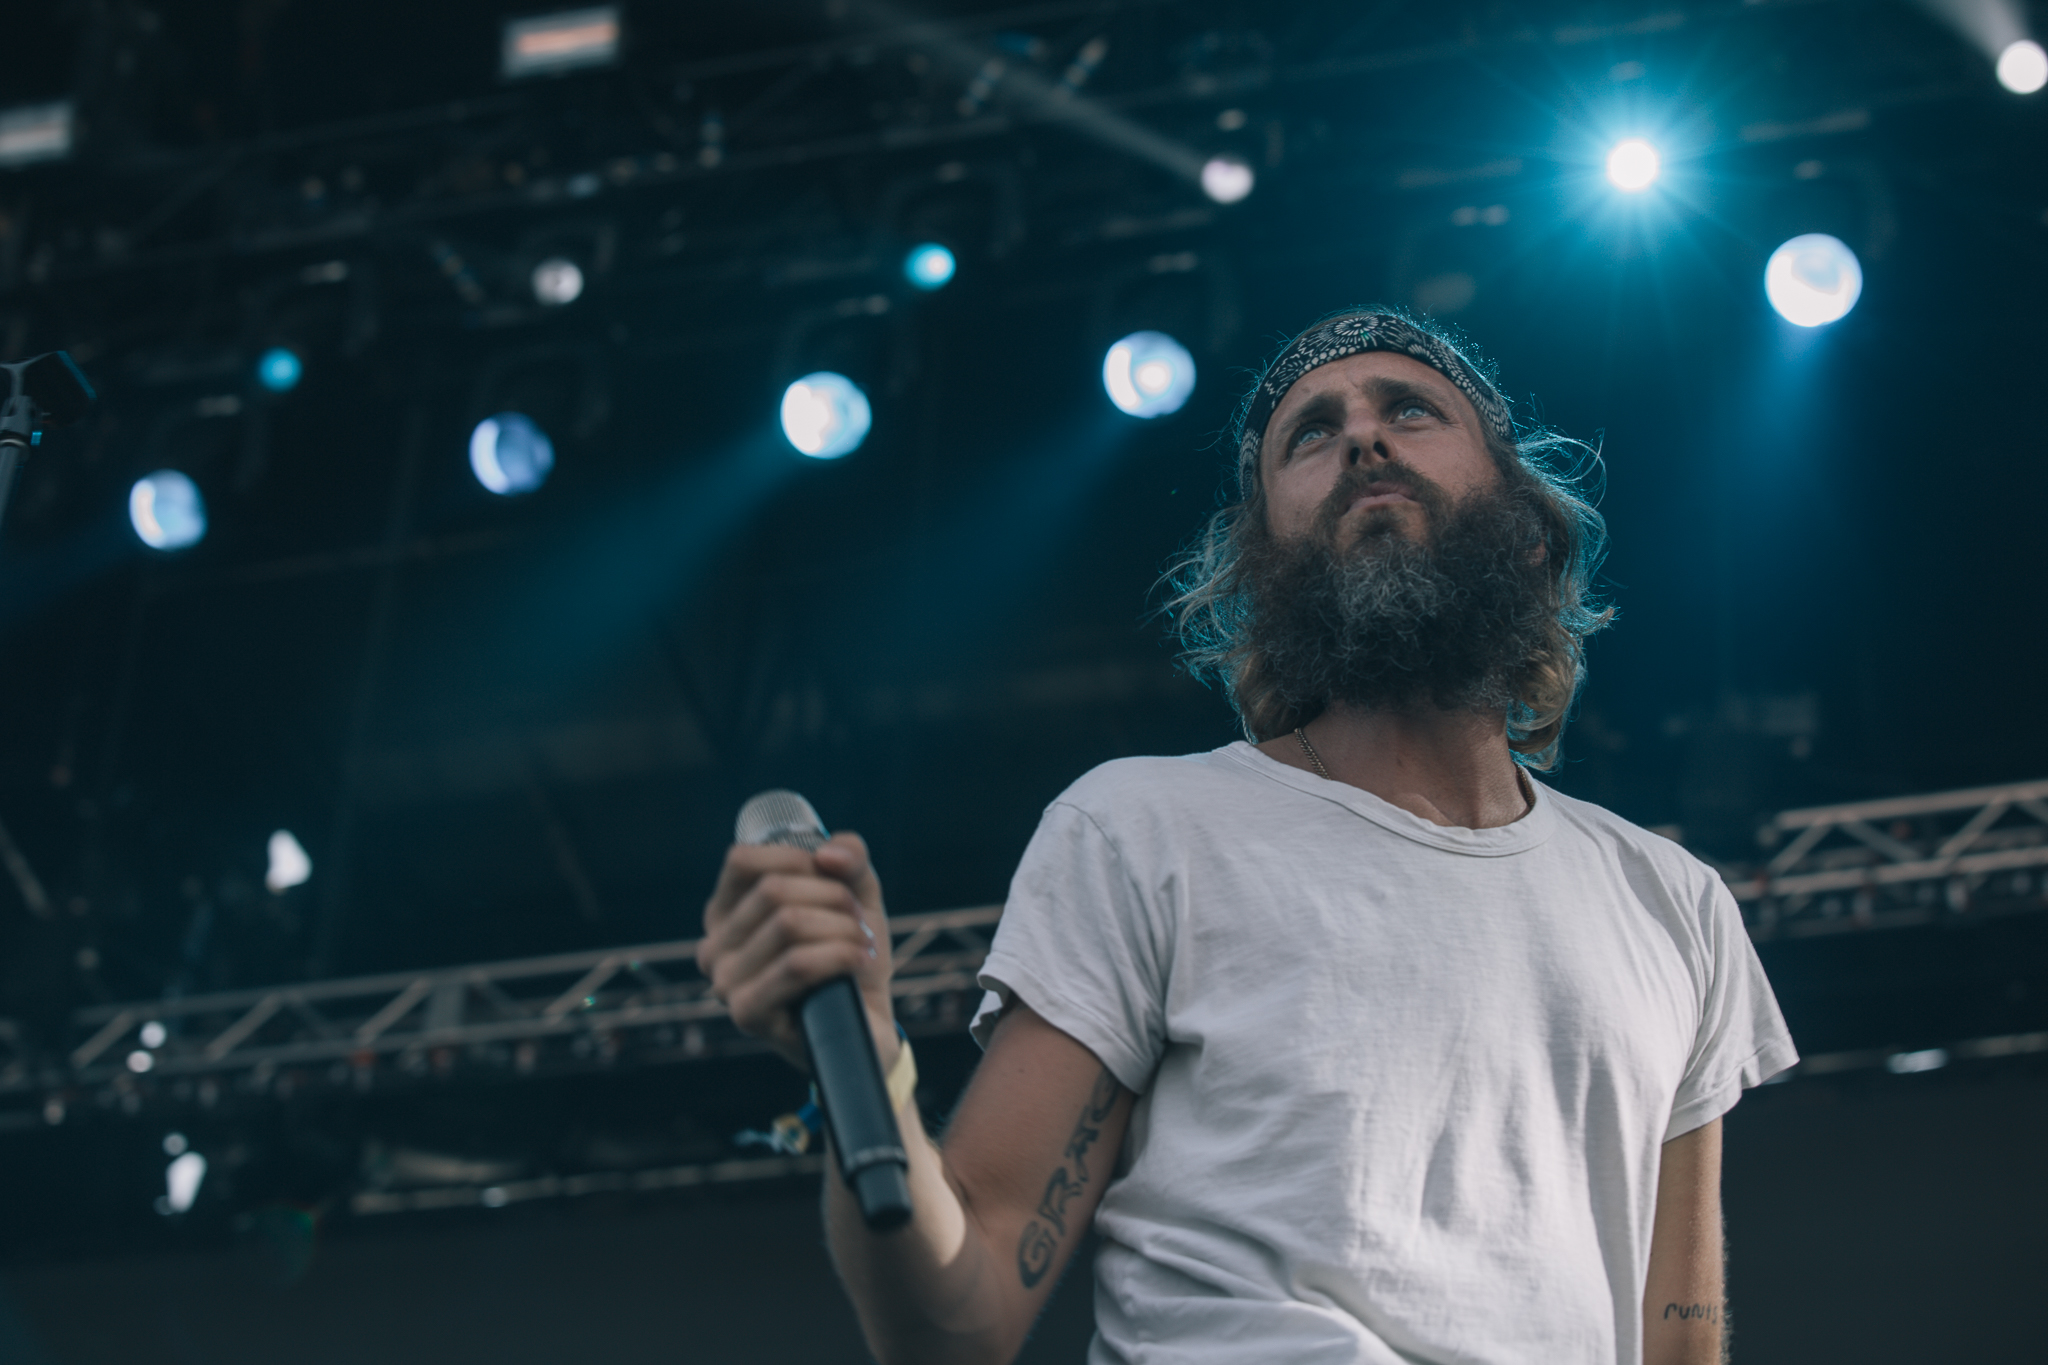 Laura Ord Photography | Austin, TX Concert Photography | AWOLNATION at Hangout Music Fest in Gulf Shores, AL